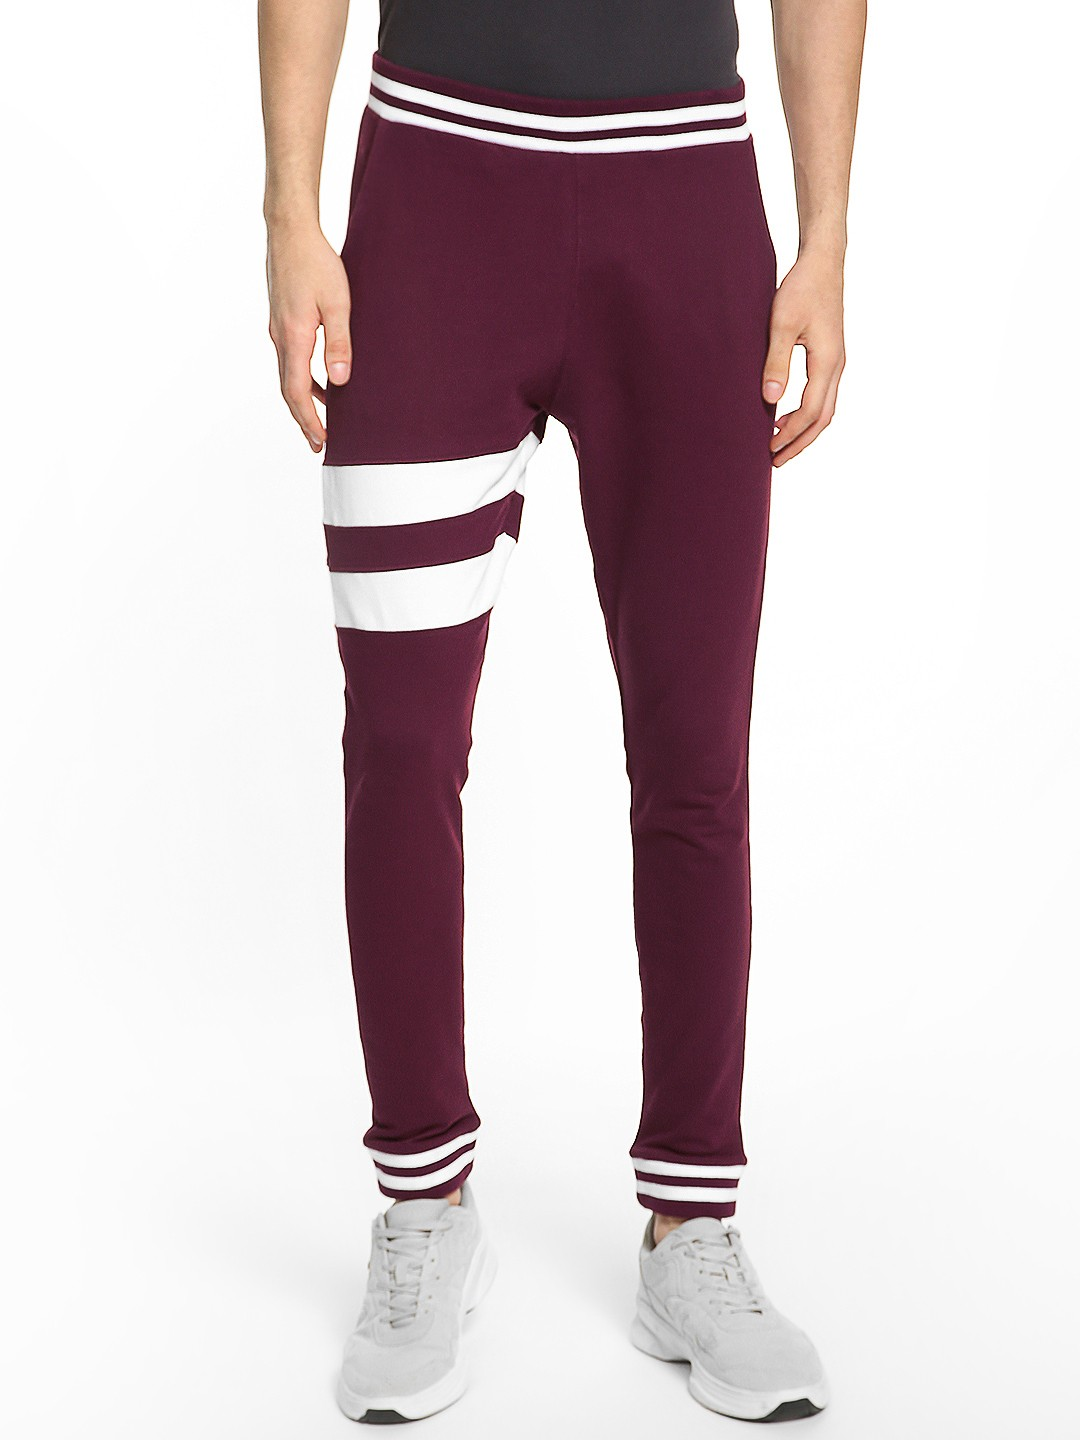 Garcon Maroon Mid-Rise Contrast Tape Print Joggers 1